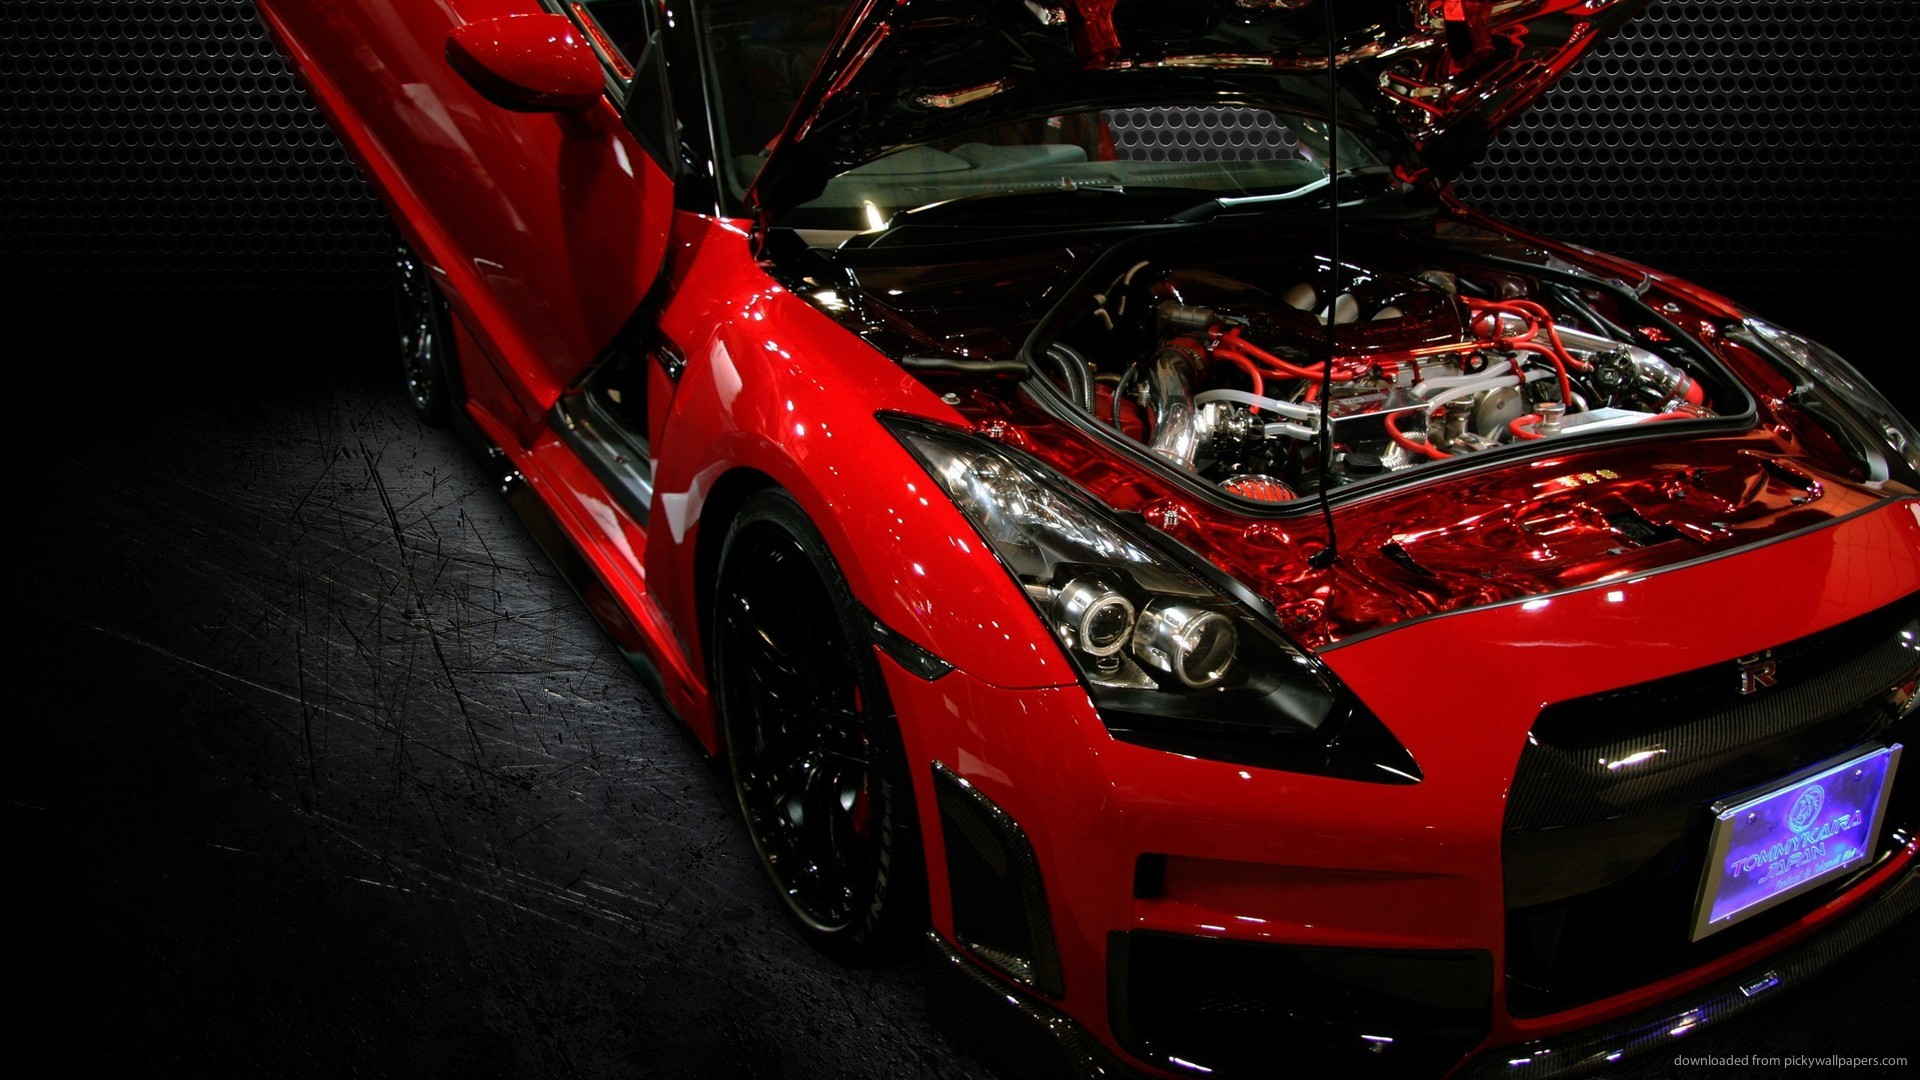 Red Nissan GT-R Bonnet Up picture